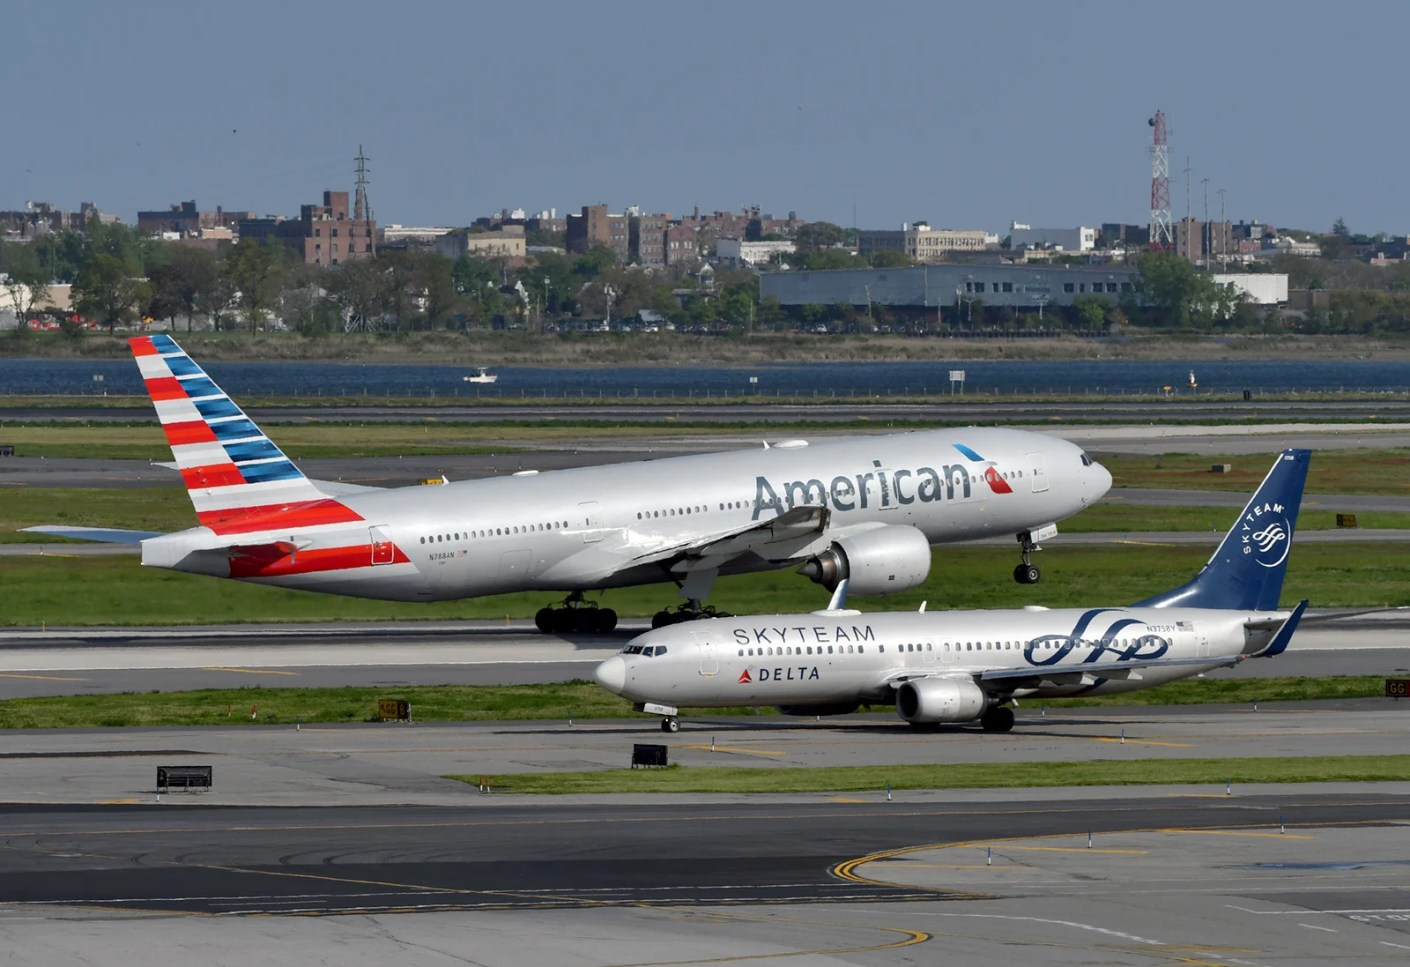 An American Airlines 777 and a Delta 737 seen from the roof deck at the TWA Hotel, JFK airport